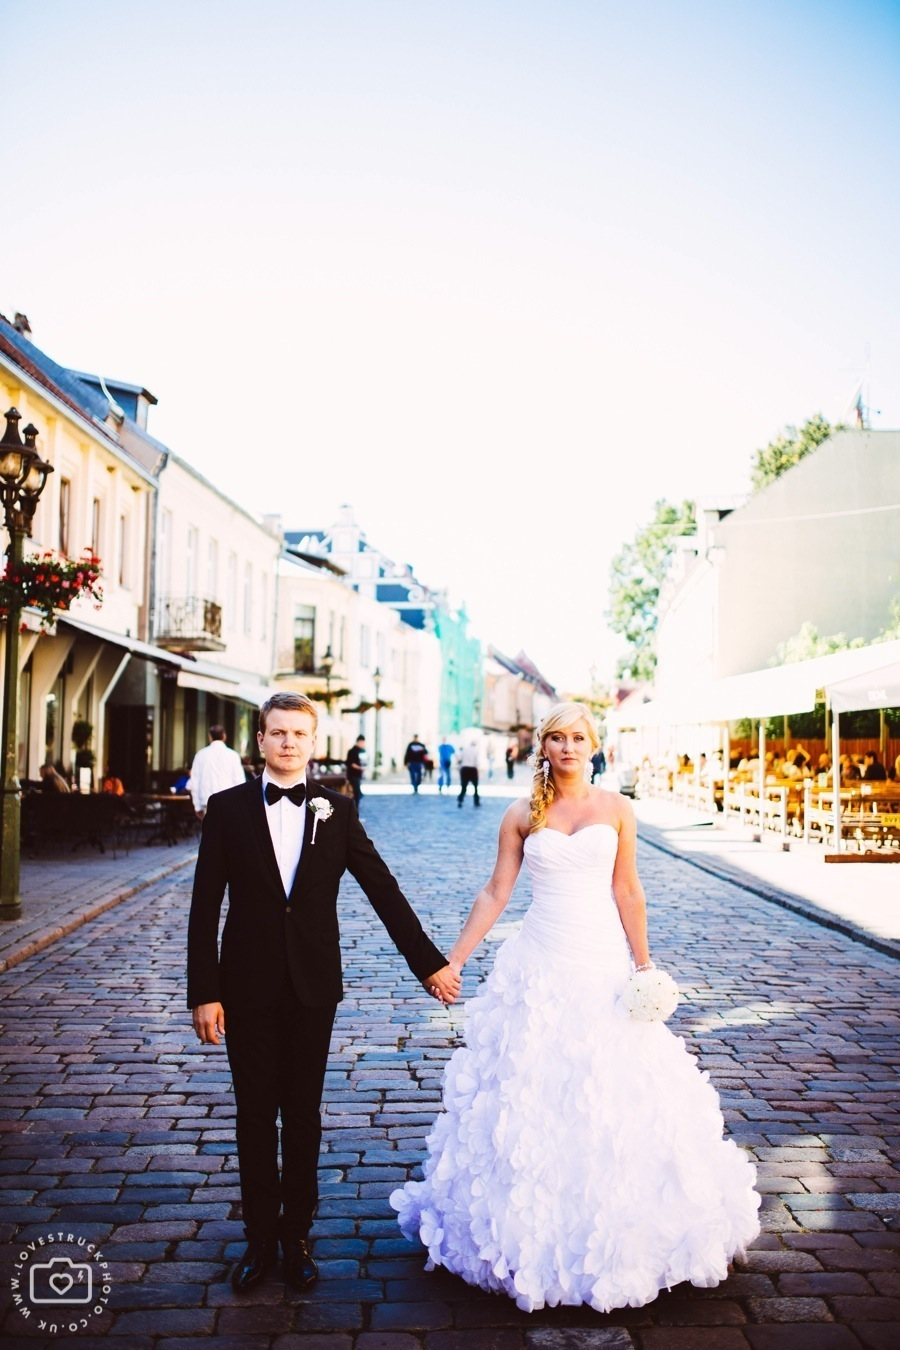 European Destination Wedding Photographer, Destination wedding portraits, eastern european wedding